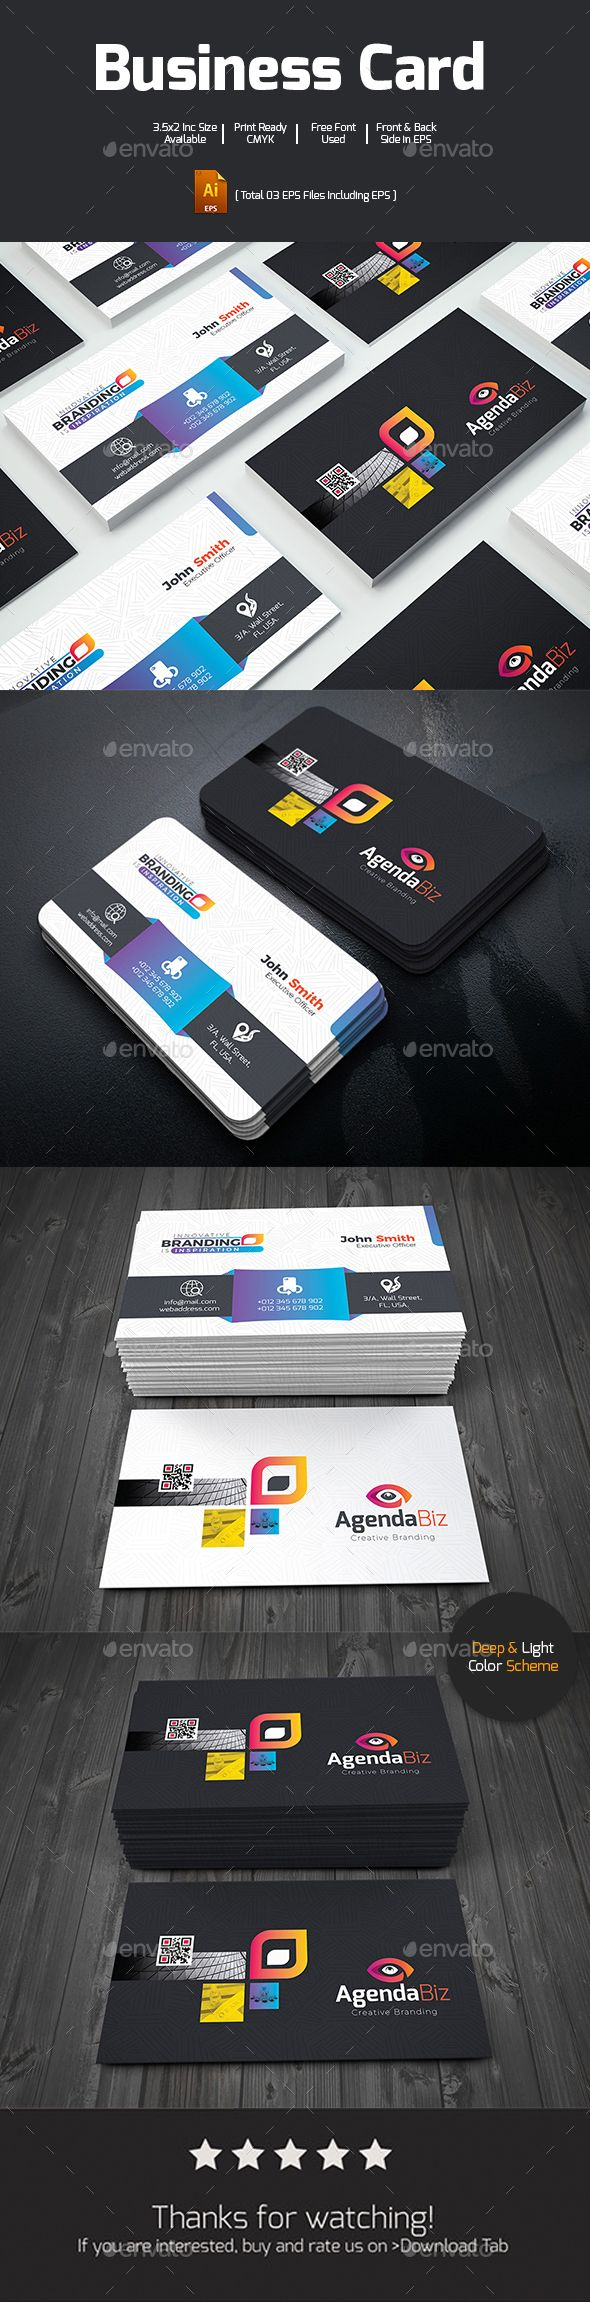 Creative business card vol 02 business cards card templates and creative business card vol 02 business cards card templates and business reheart Gallery